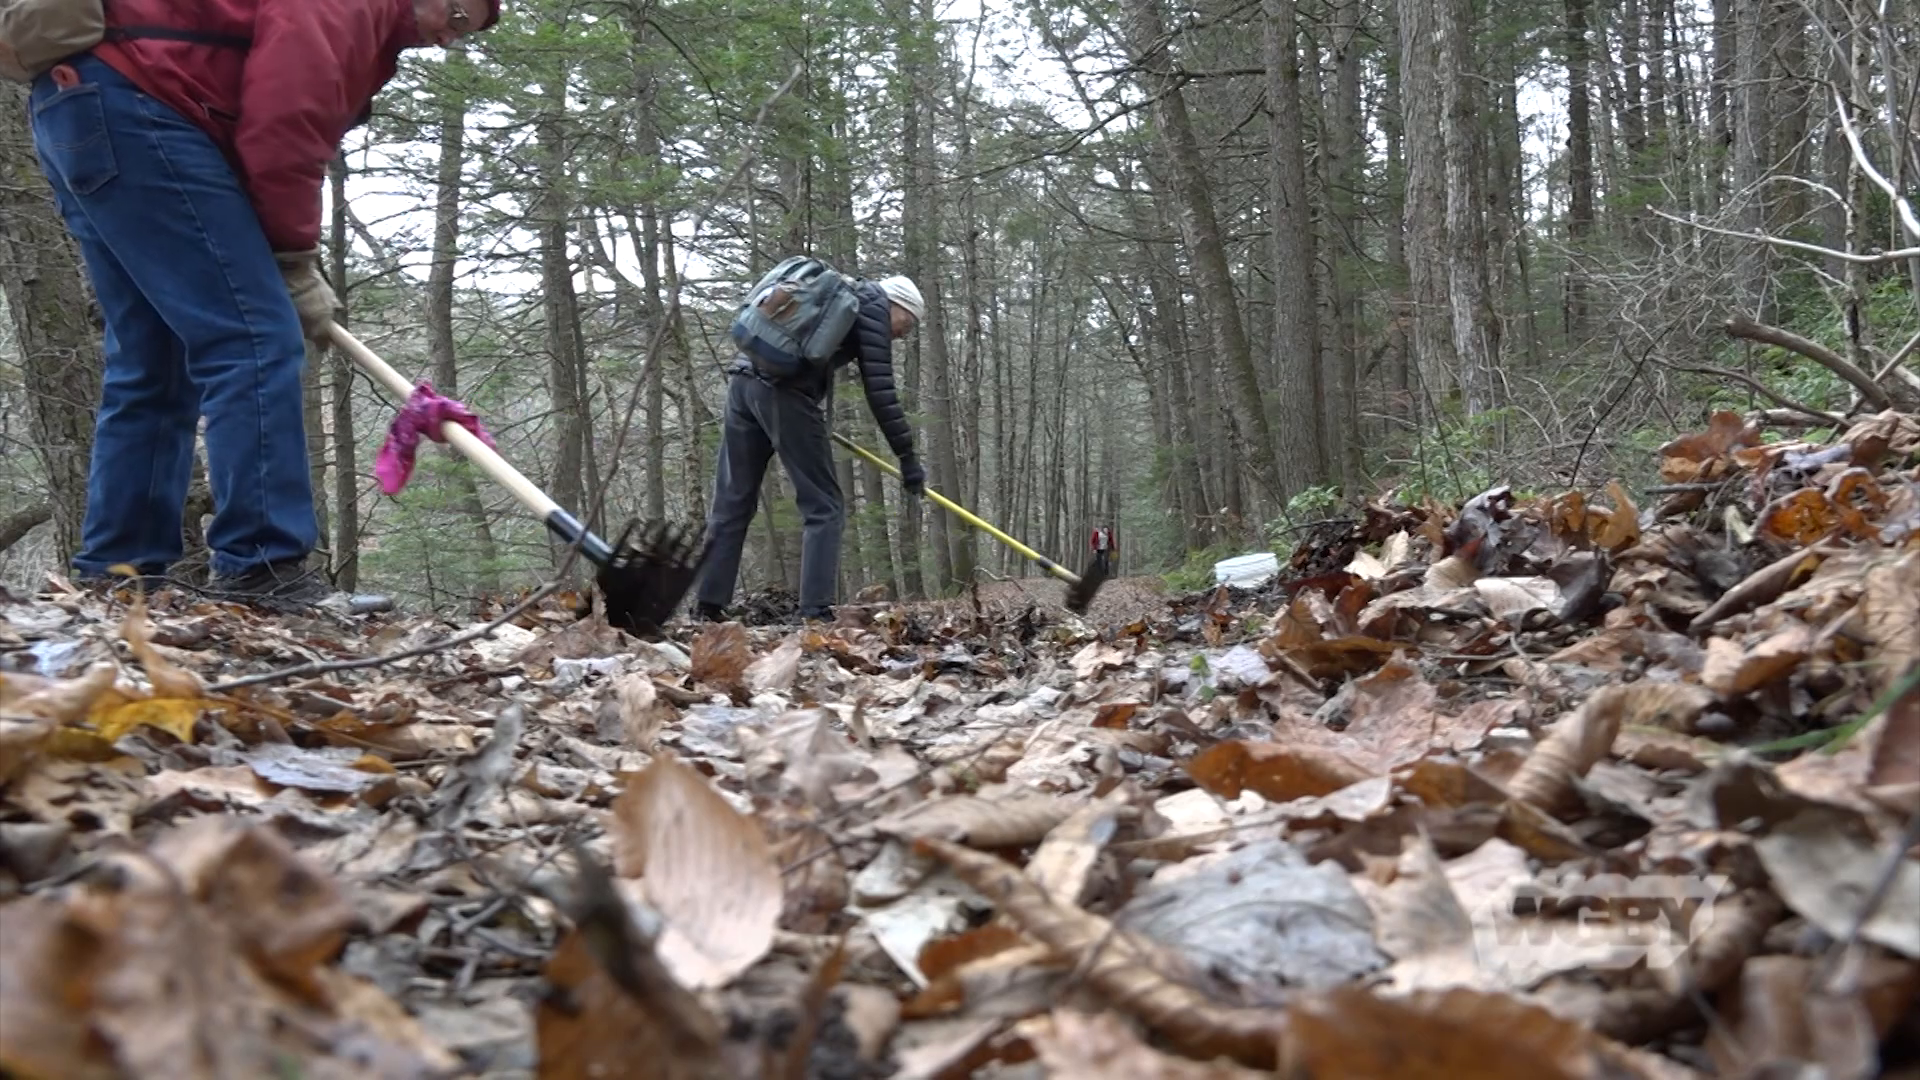 East Branch Trail Cleanup at Chesterfield Gorge